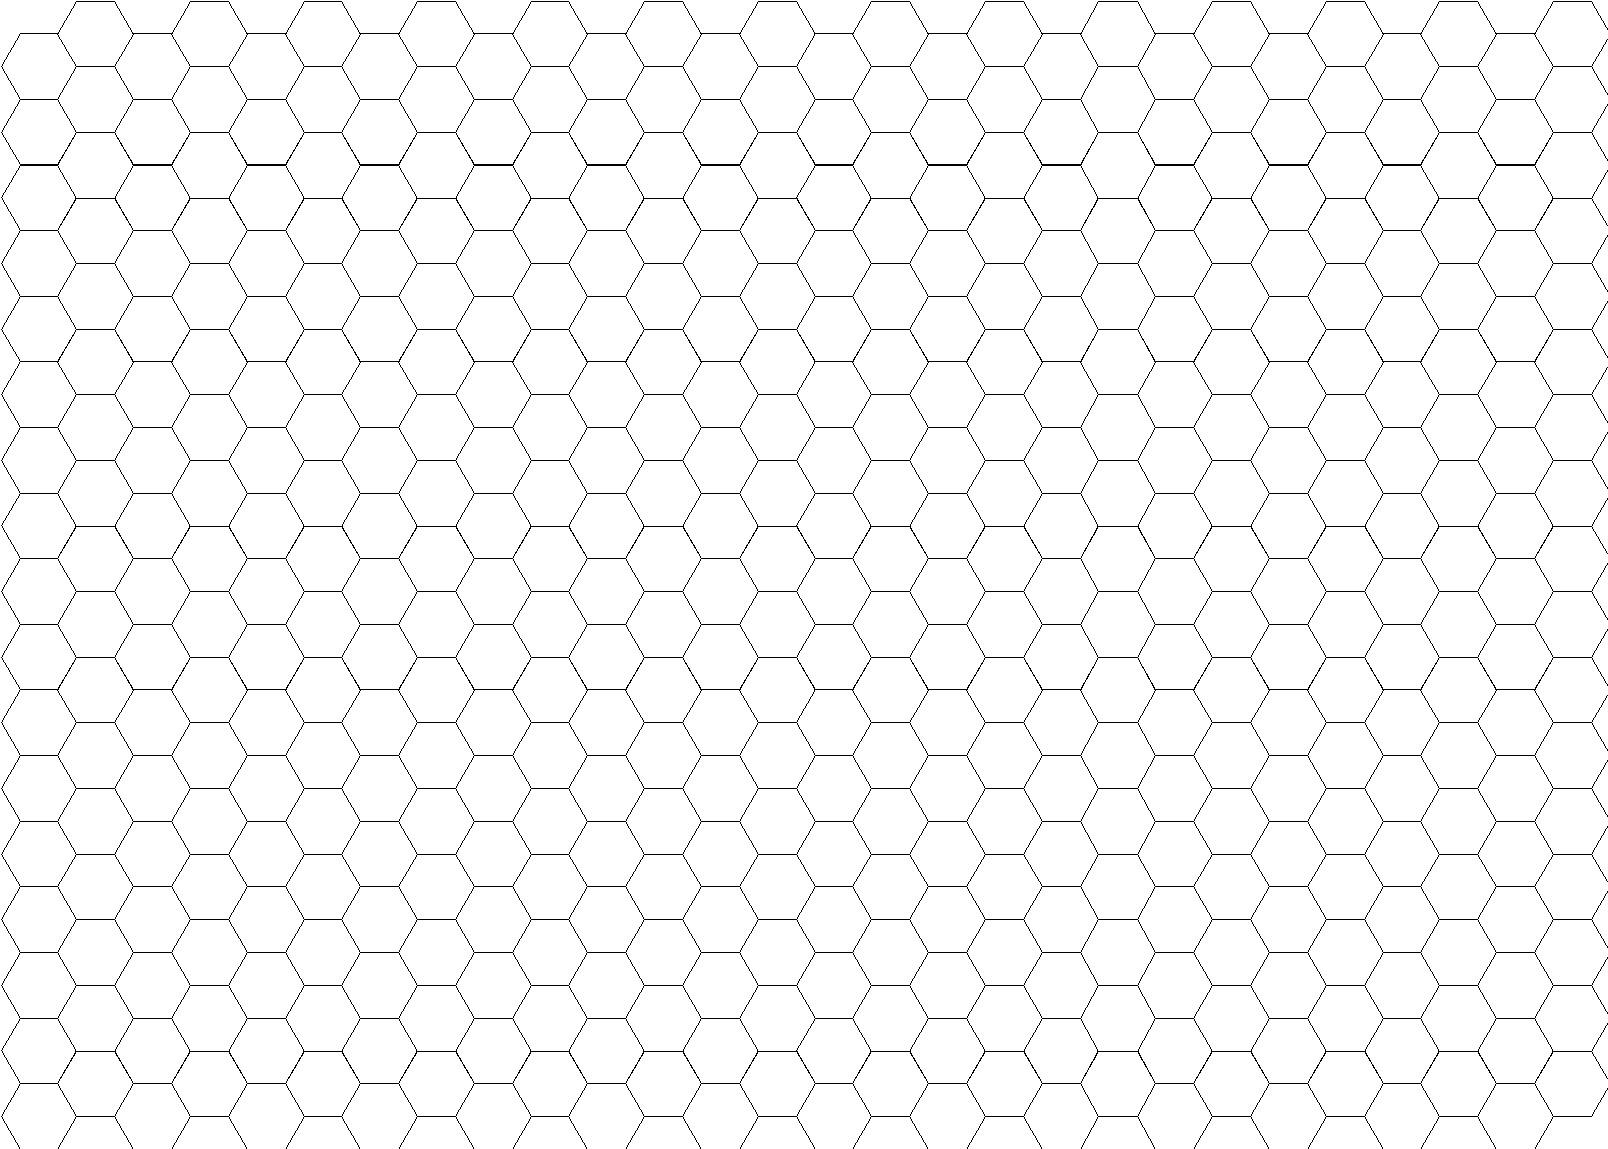 graphic regarding Printable Hexagon Graph Paper named Totally free Printable Graph Paper